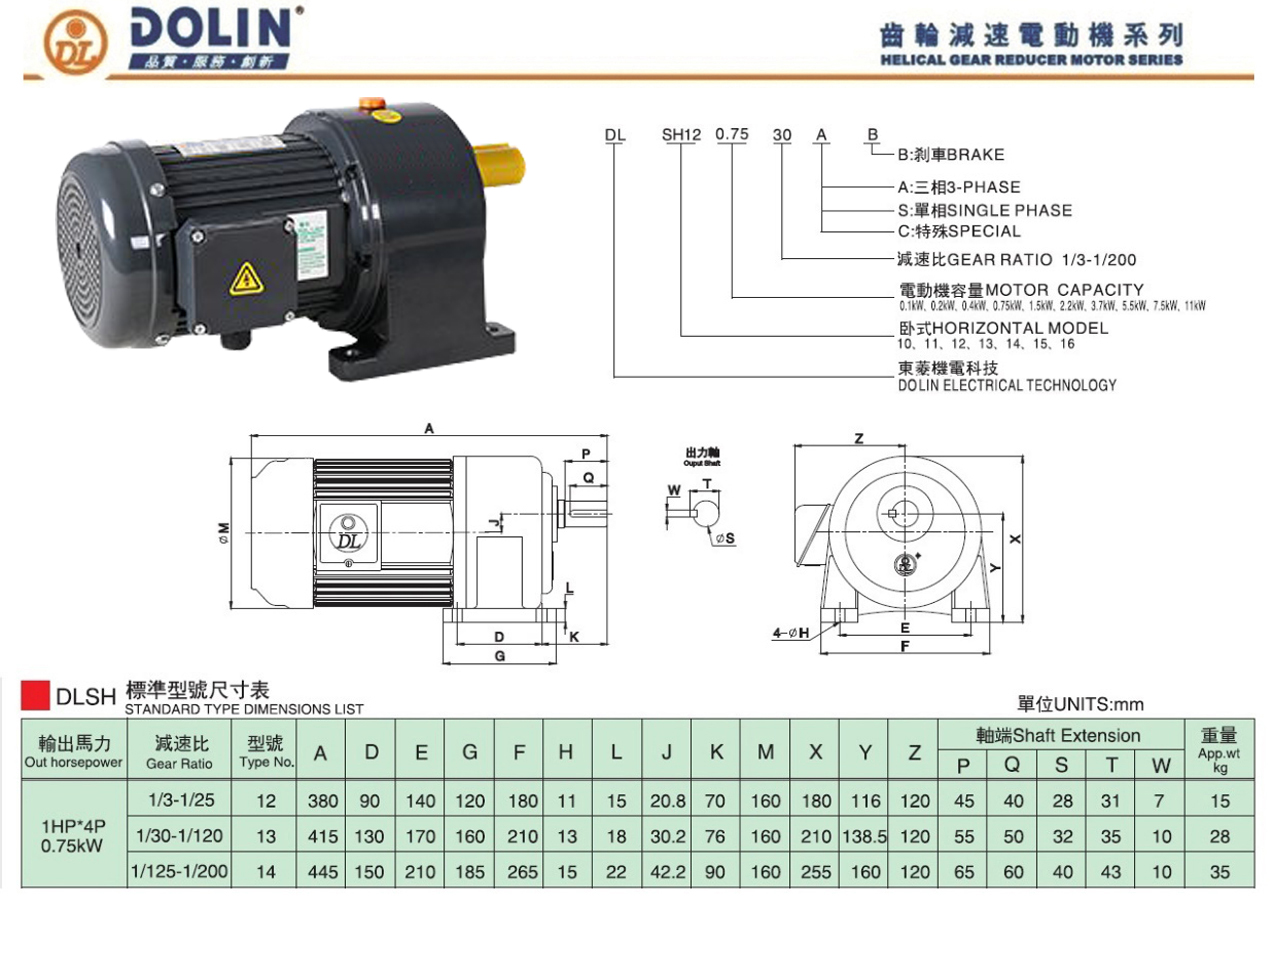 0 75kw gear motor catalogues